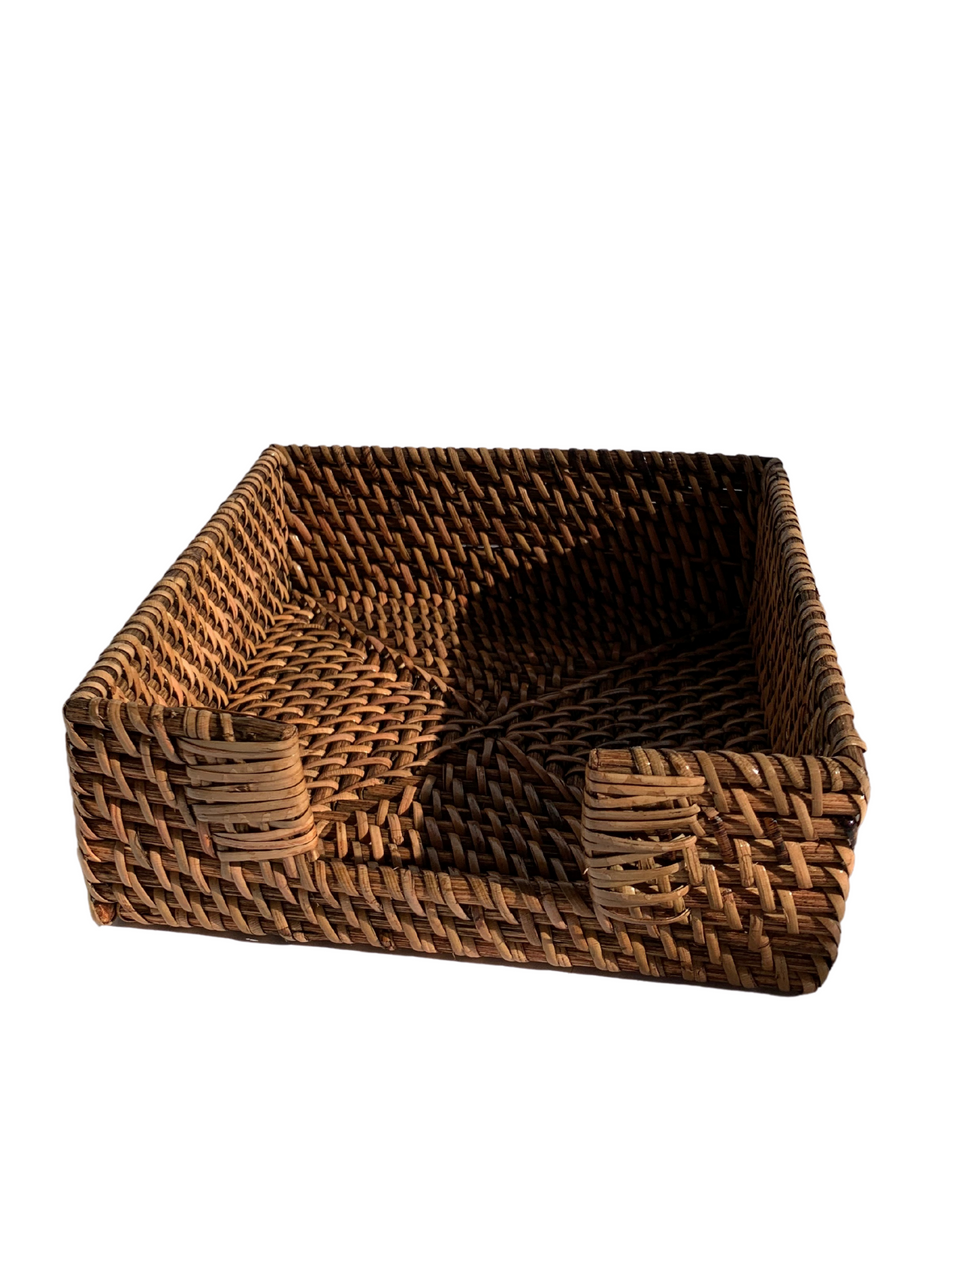 Serviette Holder - Antiqued Rattan